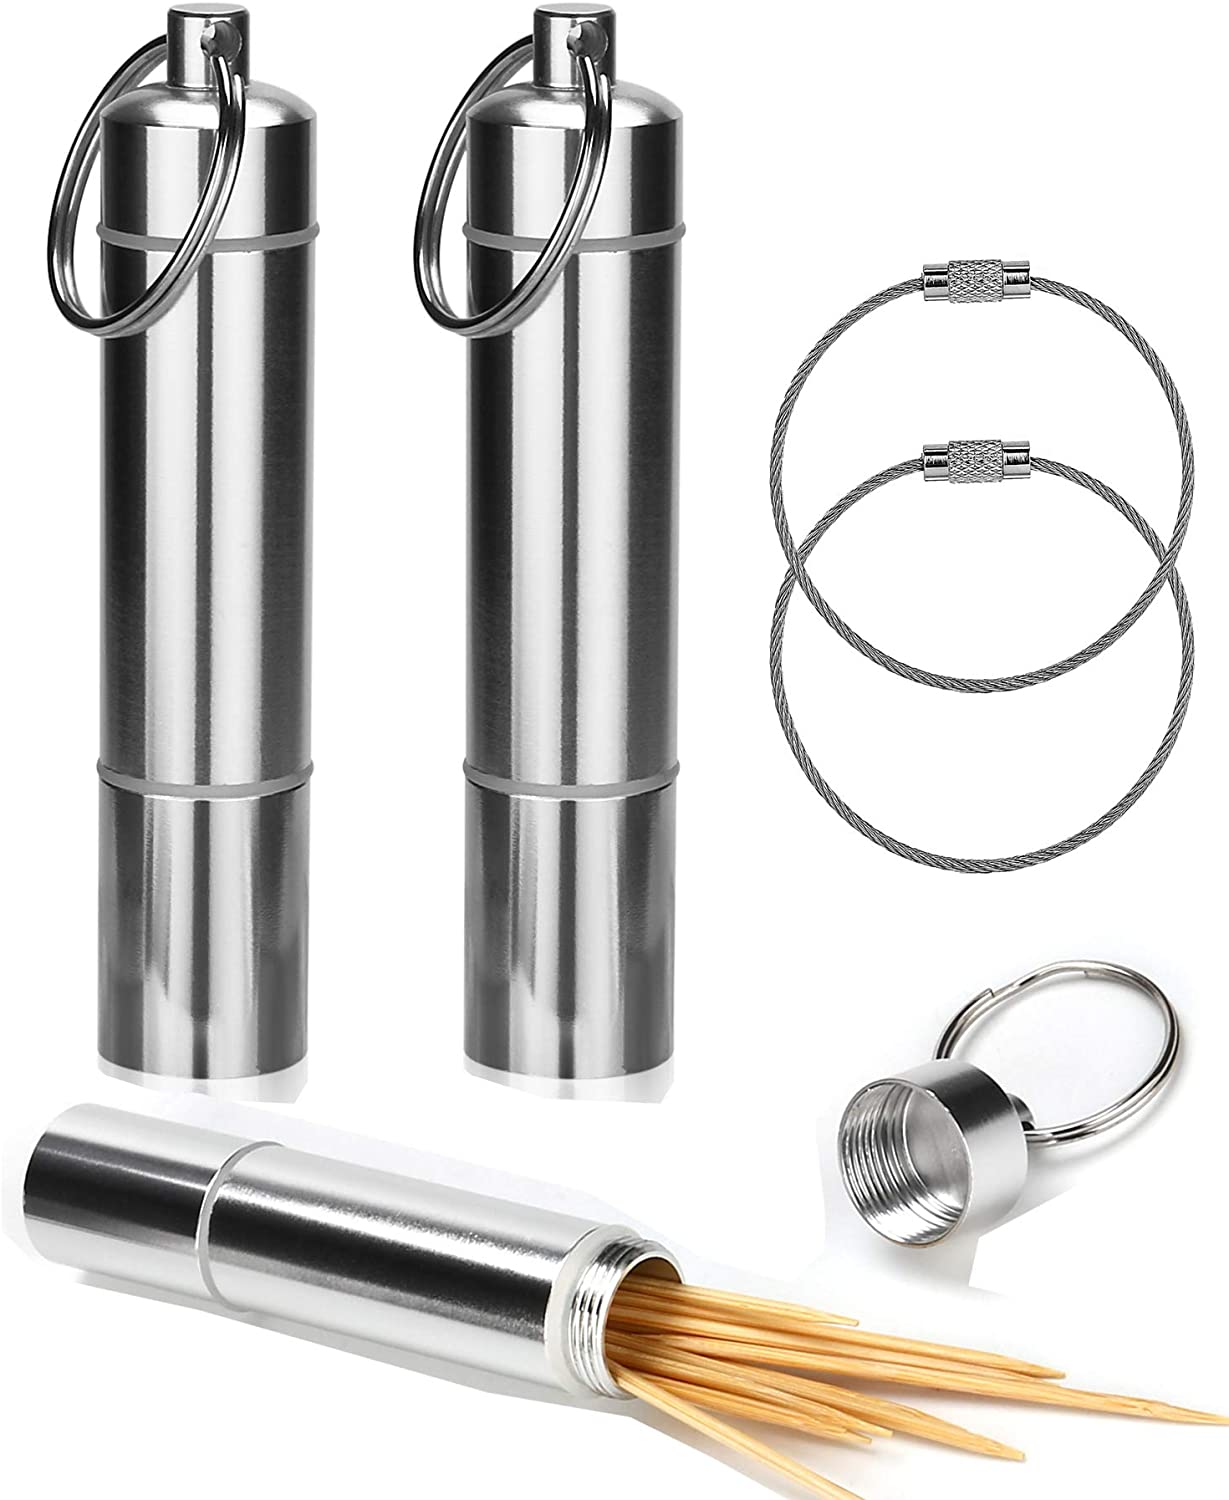 Aluminum Travel Waterproof Box Metal Pill Case with Key Ring OOTSR Stainless Steel Toothpick Holder 2 Pack Portable Toothpick Case with Wire Keychain Cable